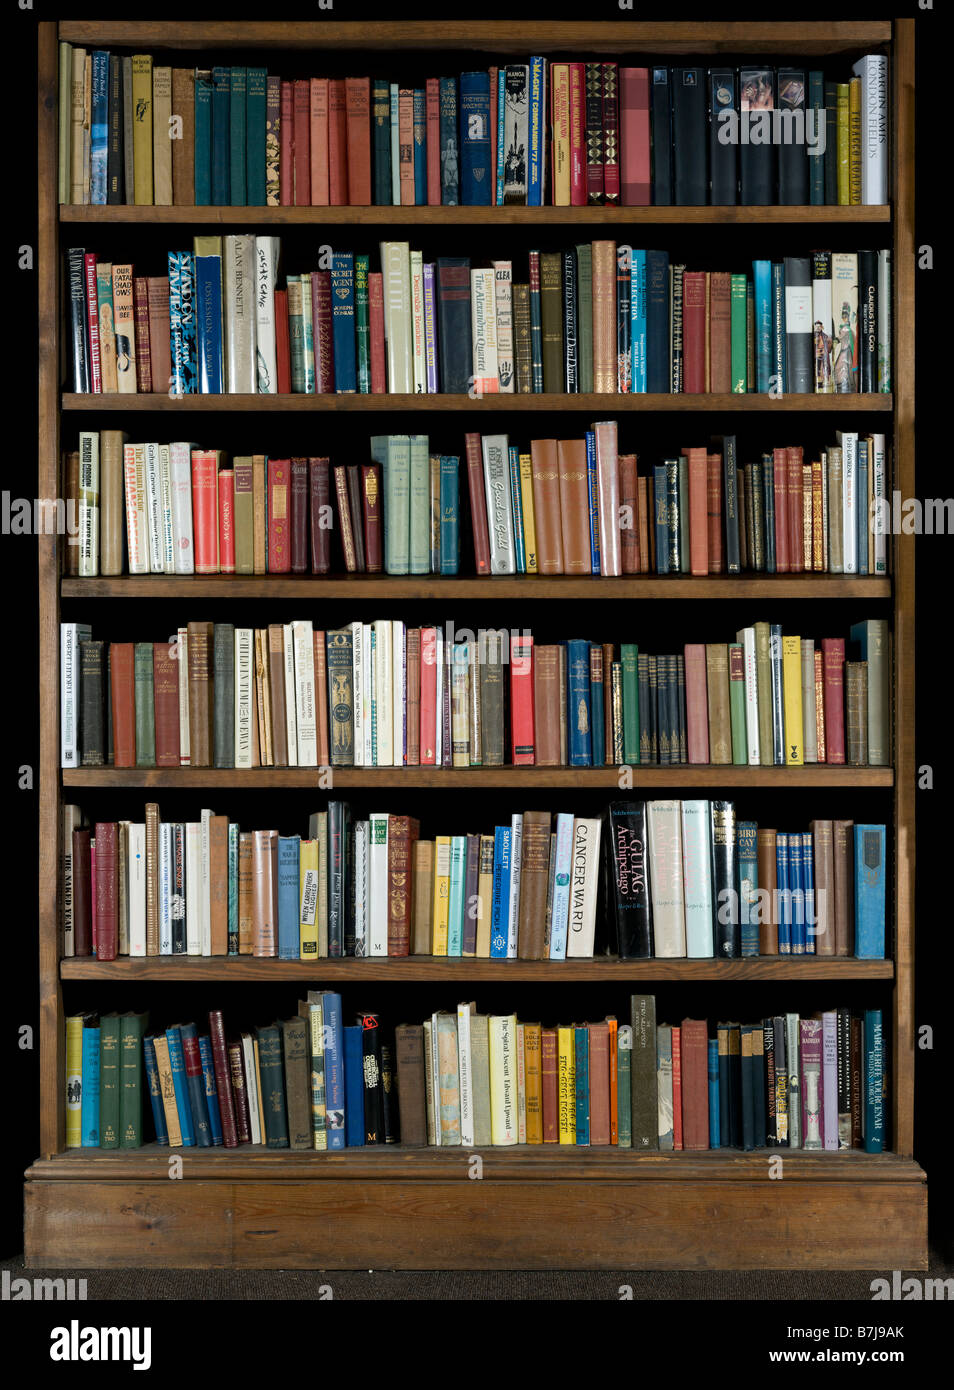 High Resolution Image Of Books On A Bookshelf On A Black Background